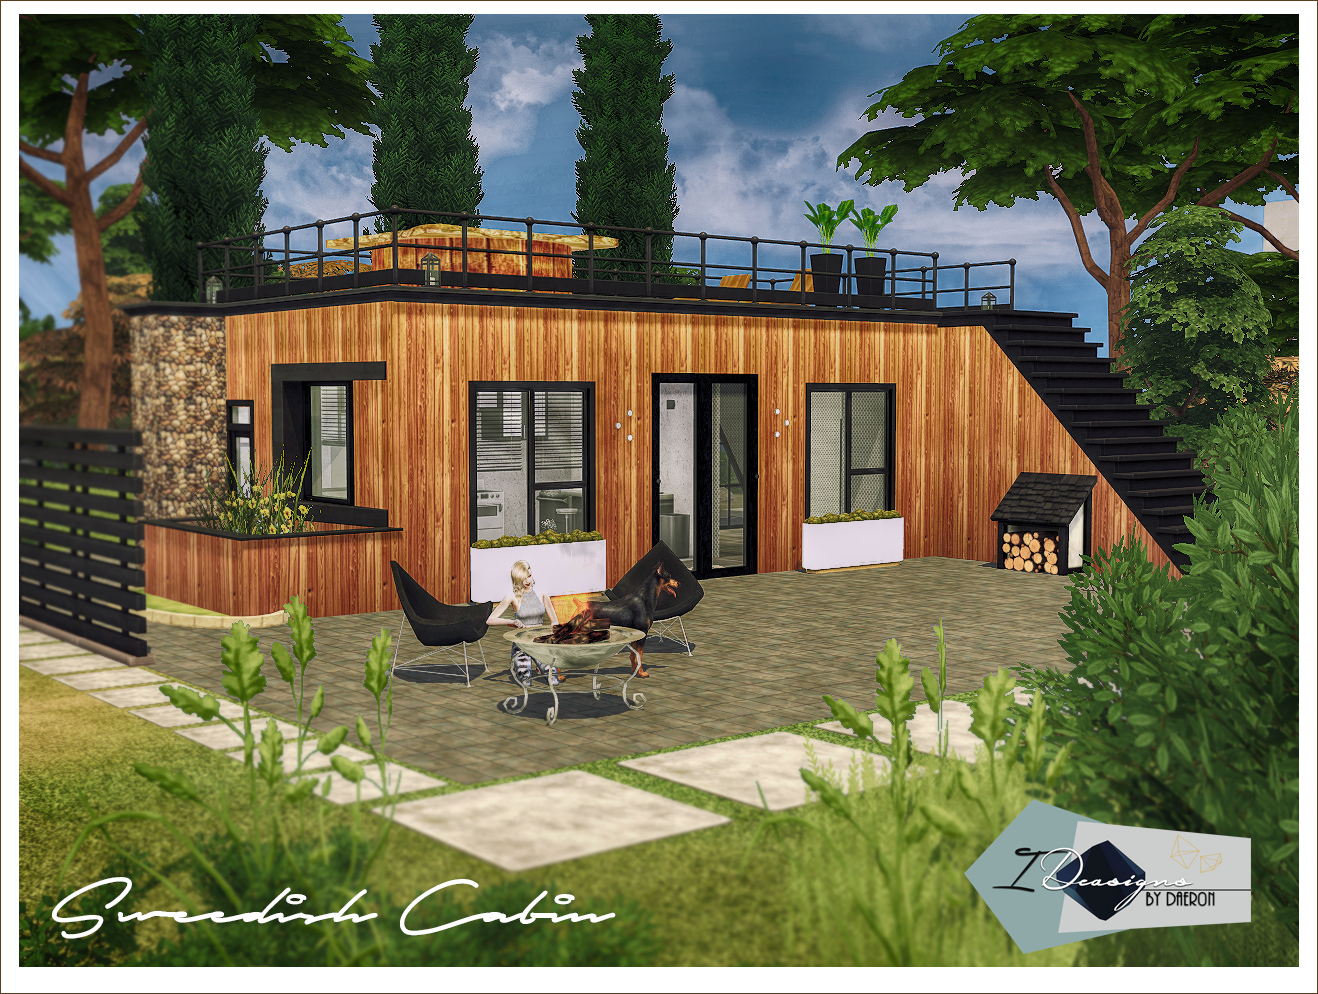 Swedish Cabin Sims 4 Designs Sims 4 Lots Pinterest Sims